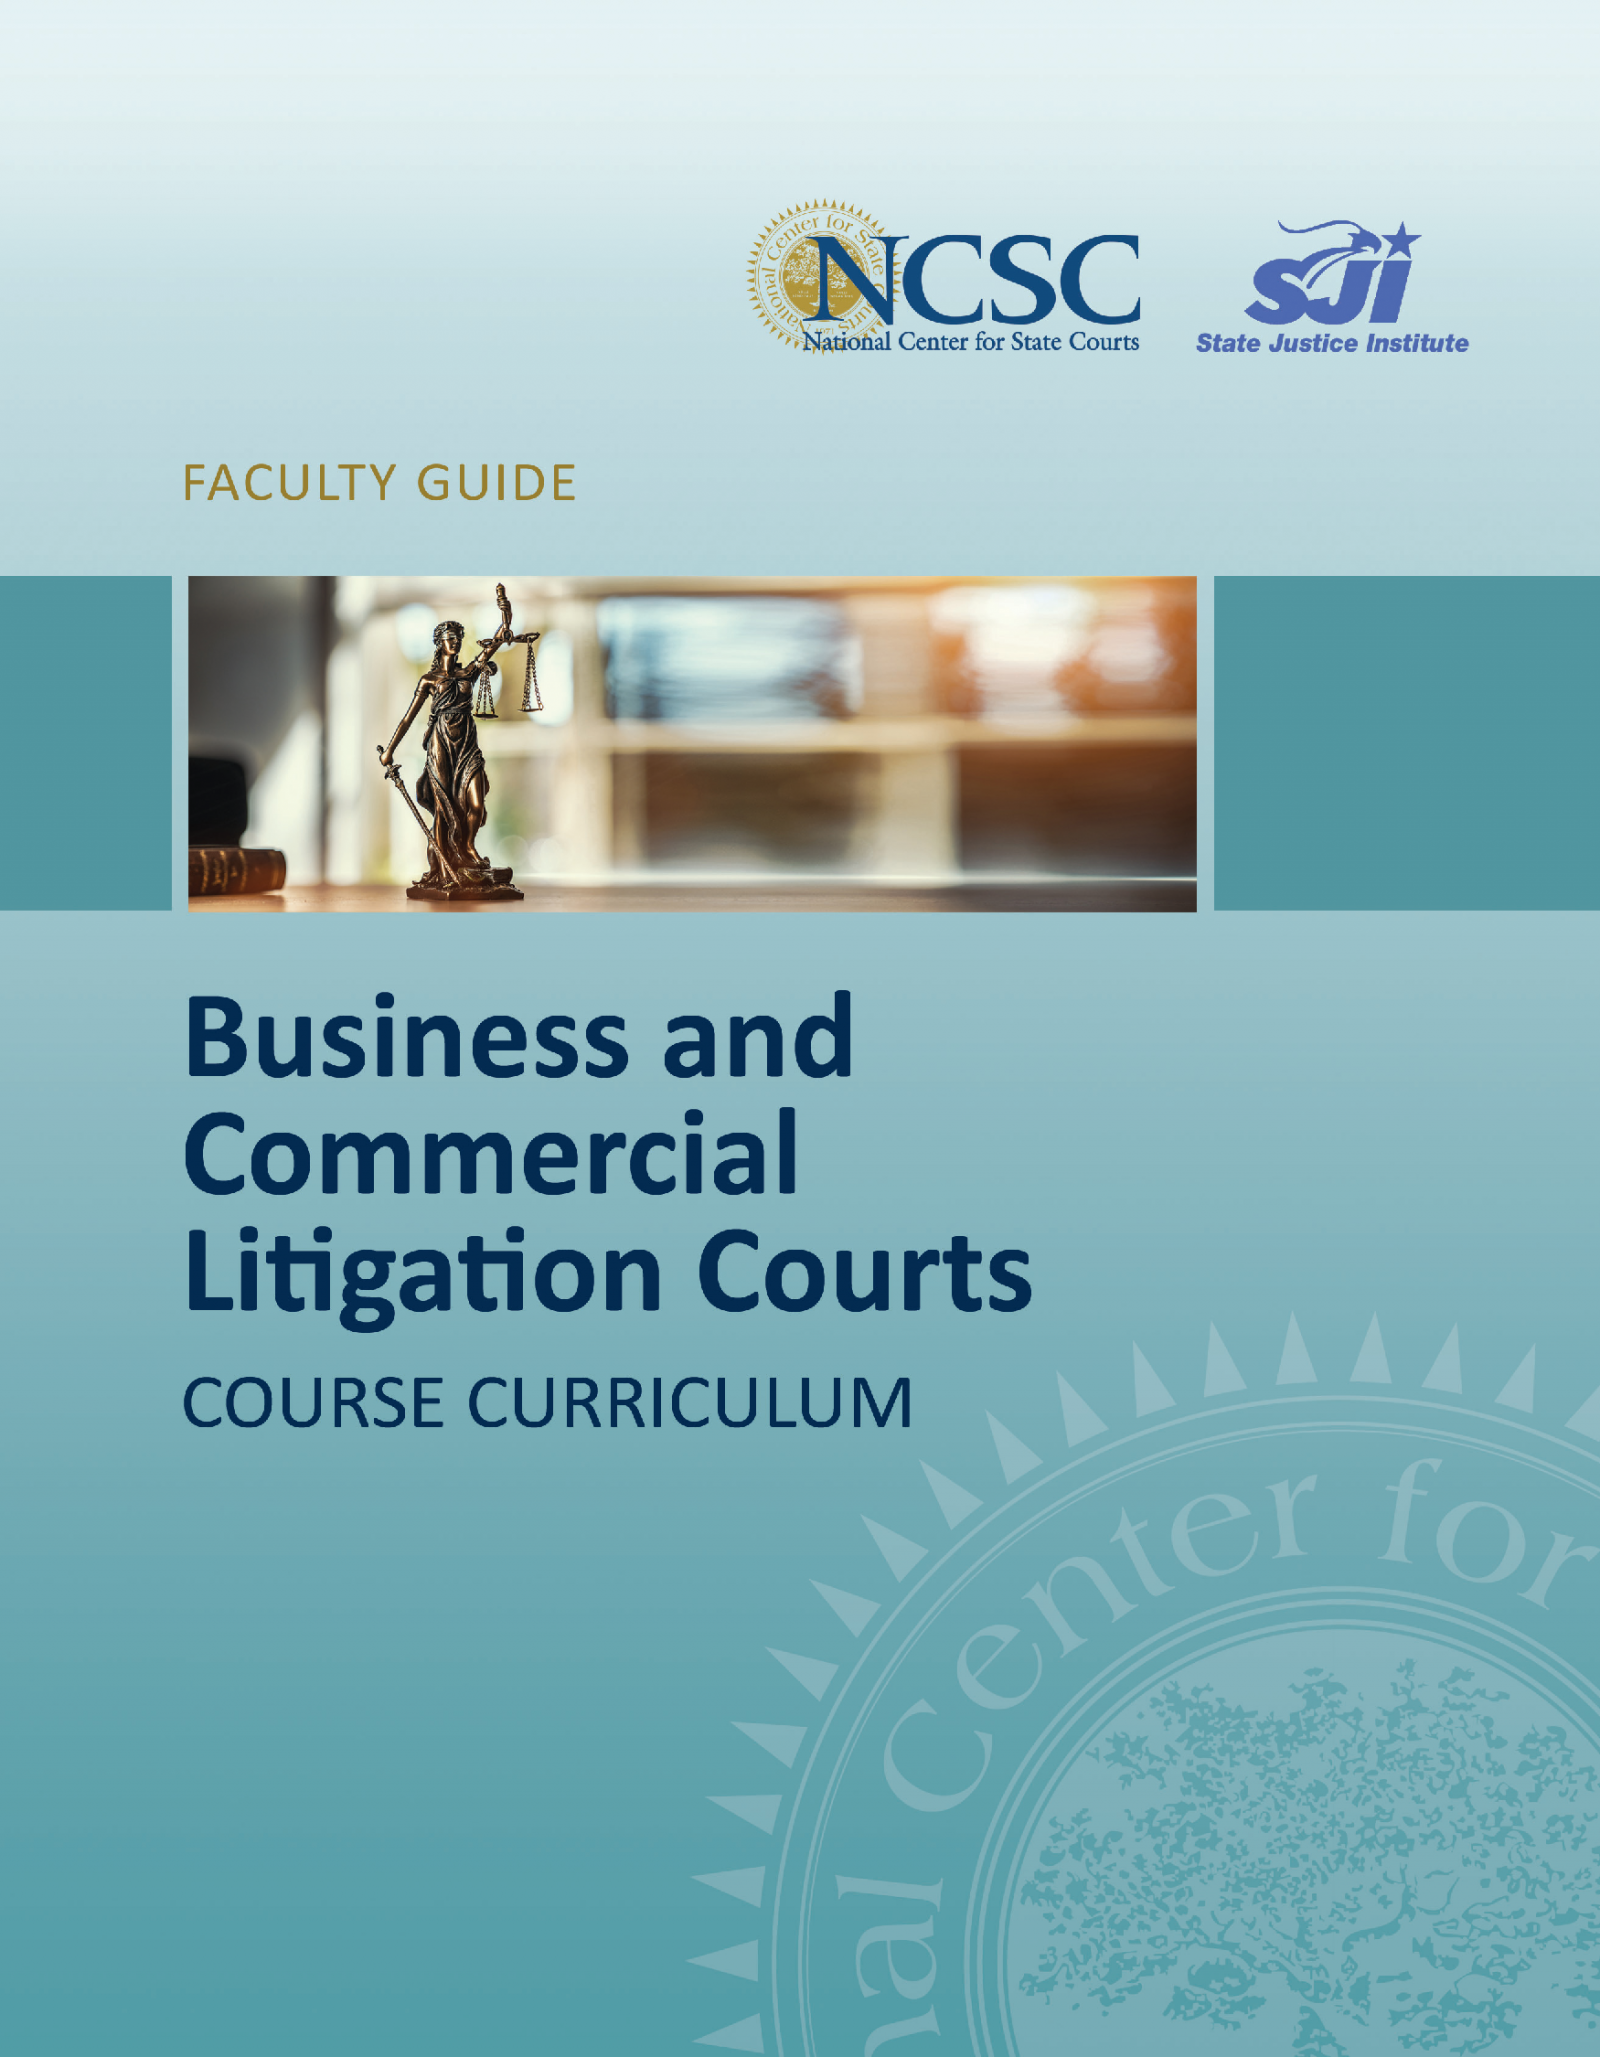 Business and Commercial Litigation Courts Training Curriculum banner image